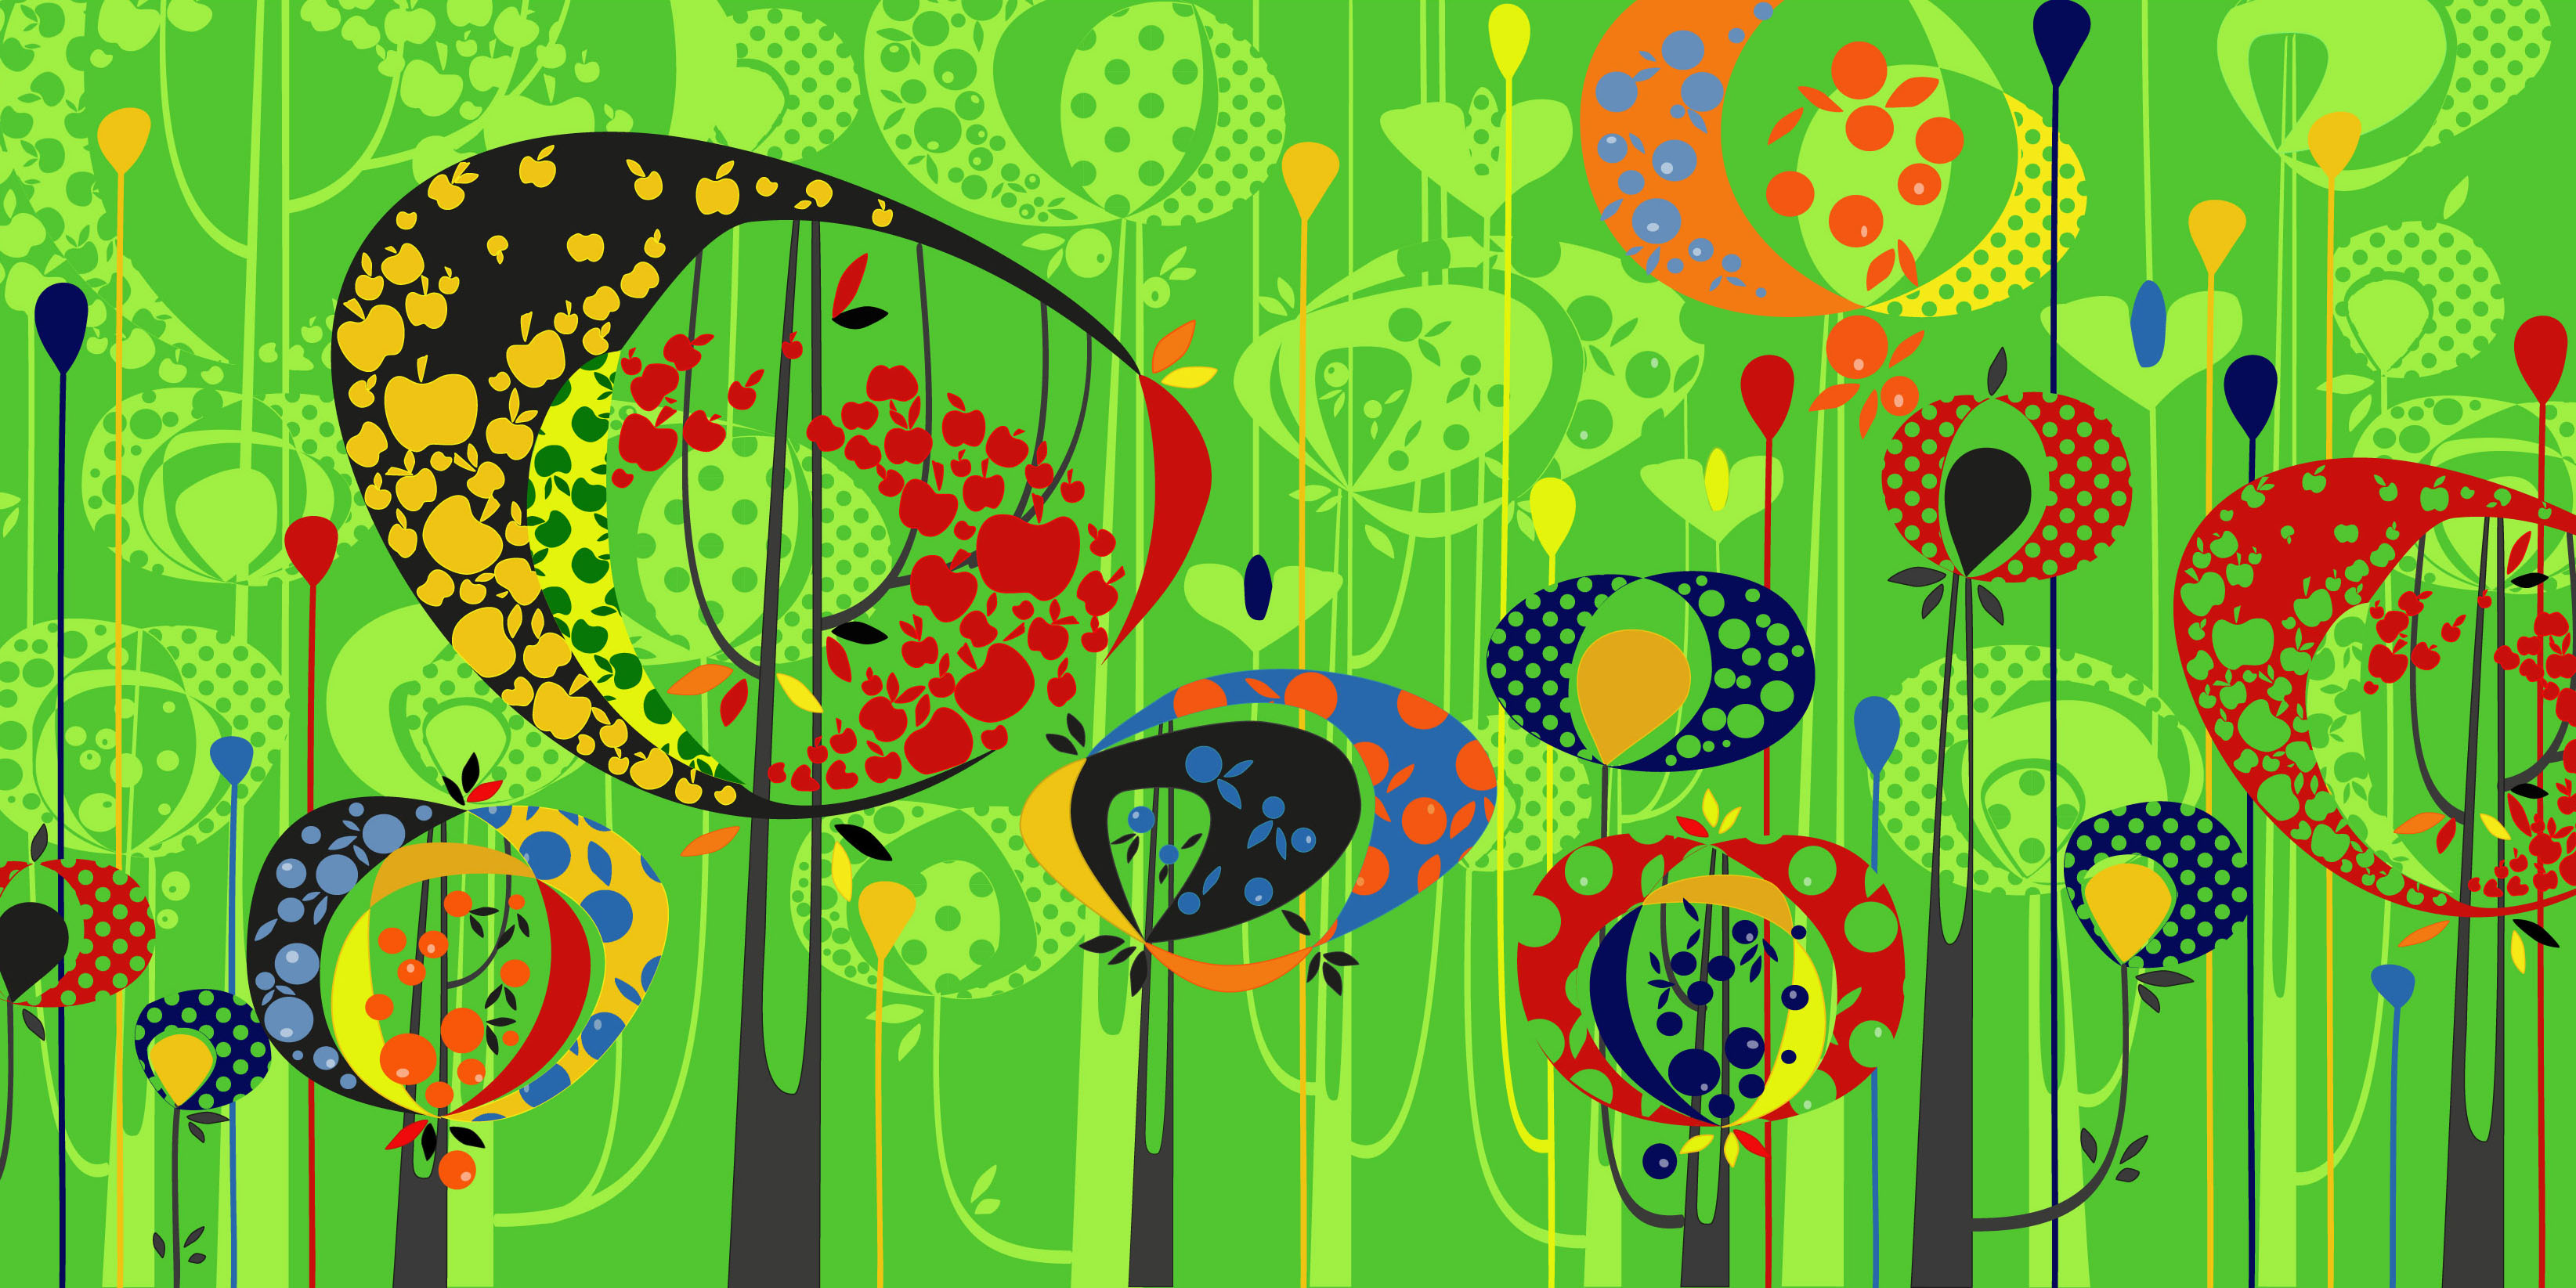 Aditi Raychoudhury. Land of Plenty. Adobe Illustrator CS. 2009.